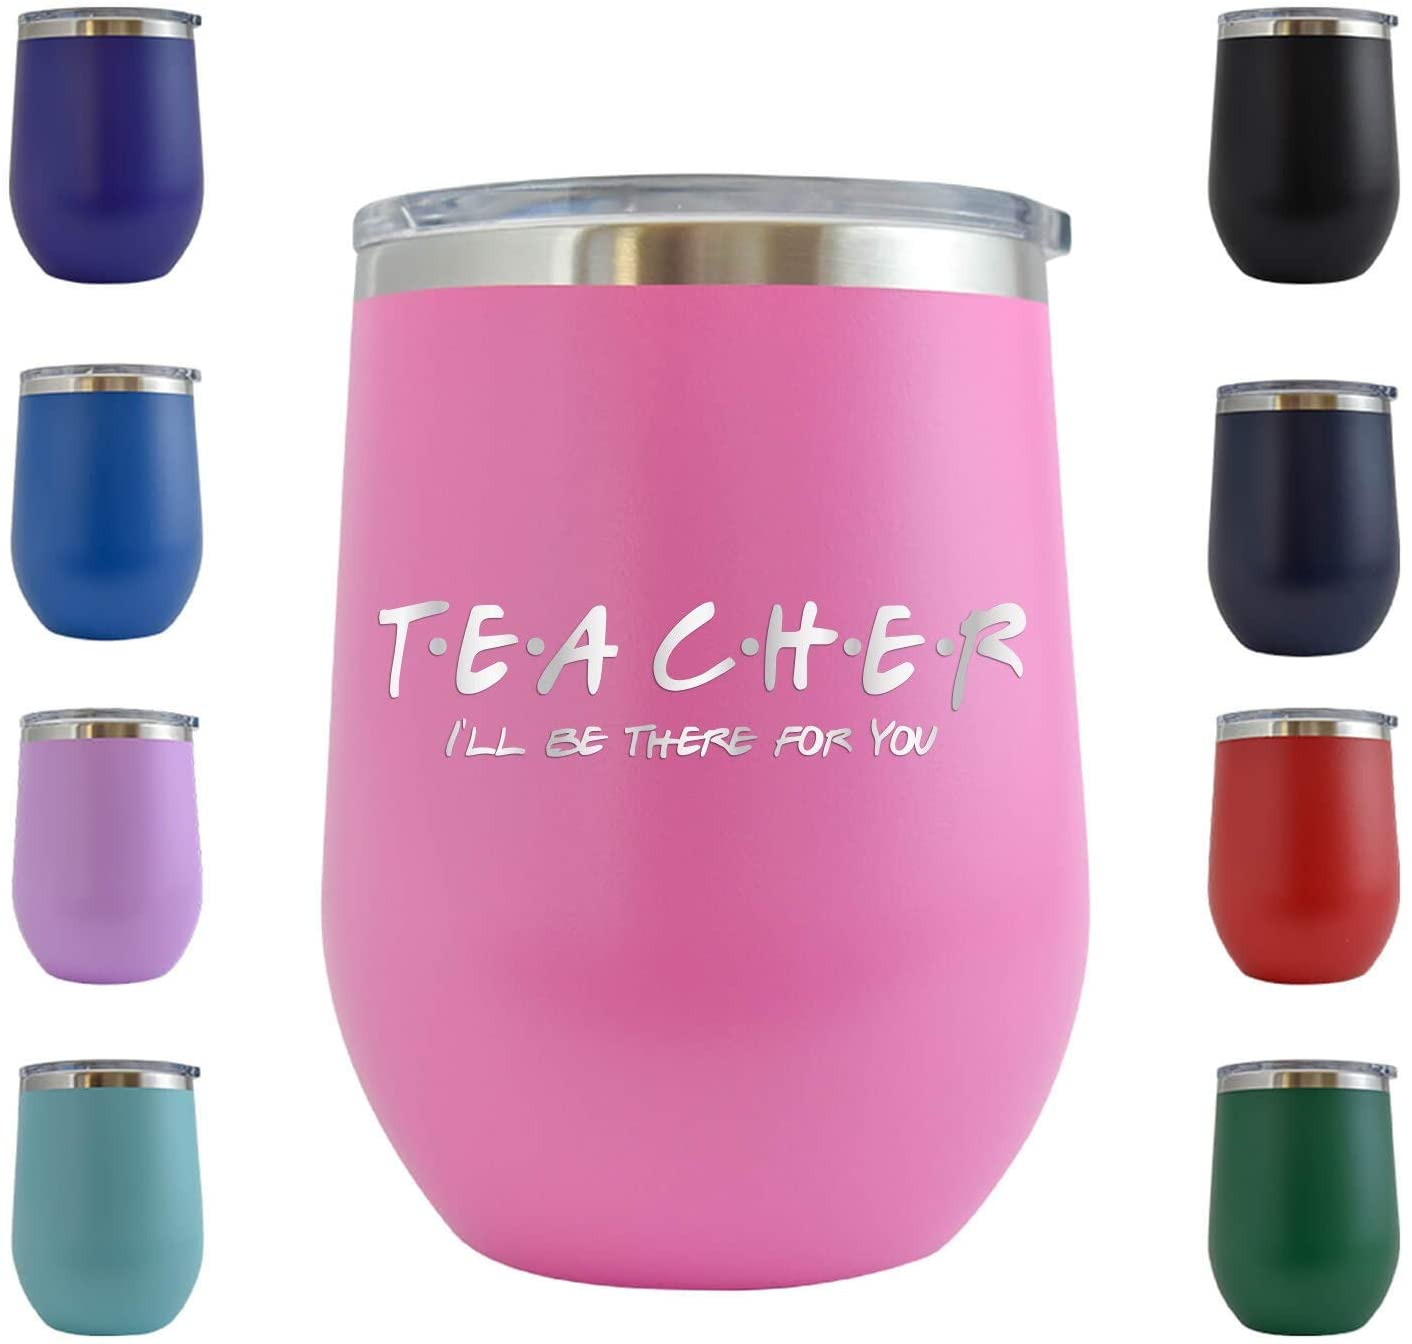 Teacher I'll Be There For You - Engraved 12 oz Stemless Wine Tumbler Cup Glass Etched - Funny Birthday Gift Ideas for him her teacher professor teach middle high school (Pink - 12 oz)